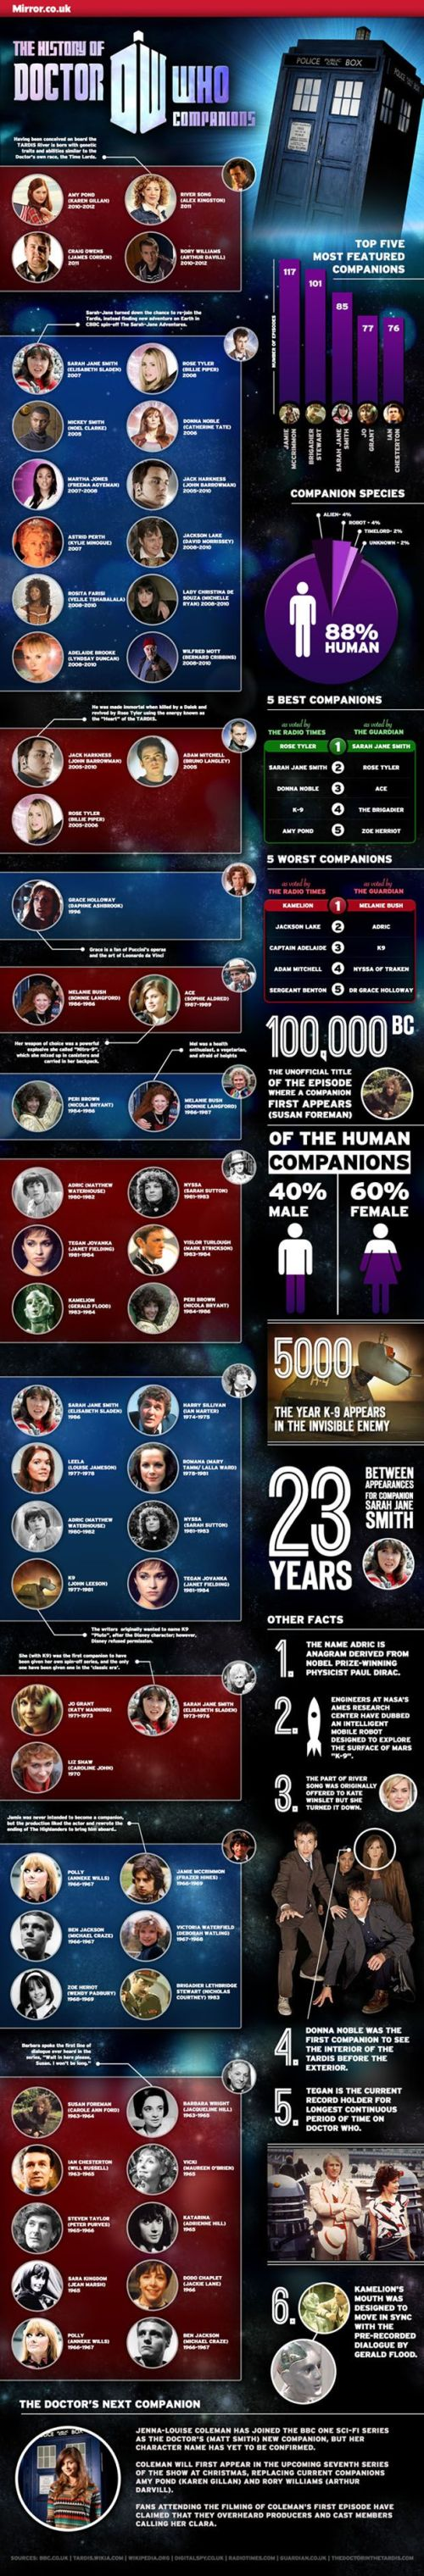 The History of Doctor Who Companions infographic